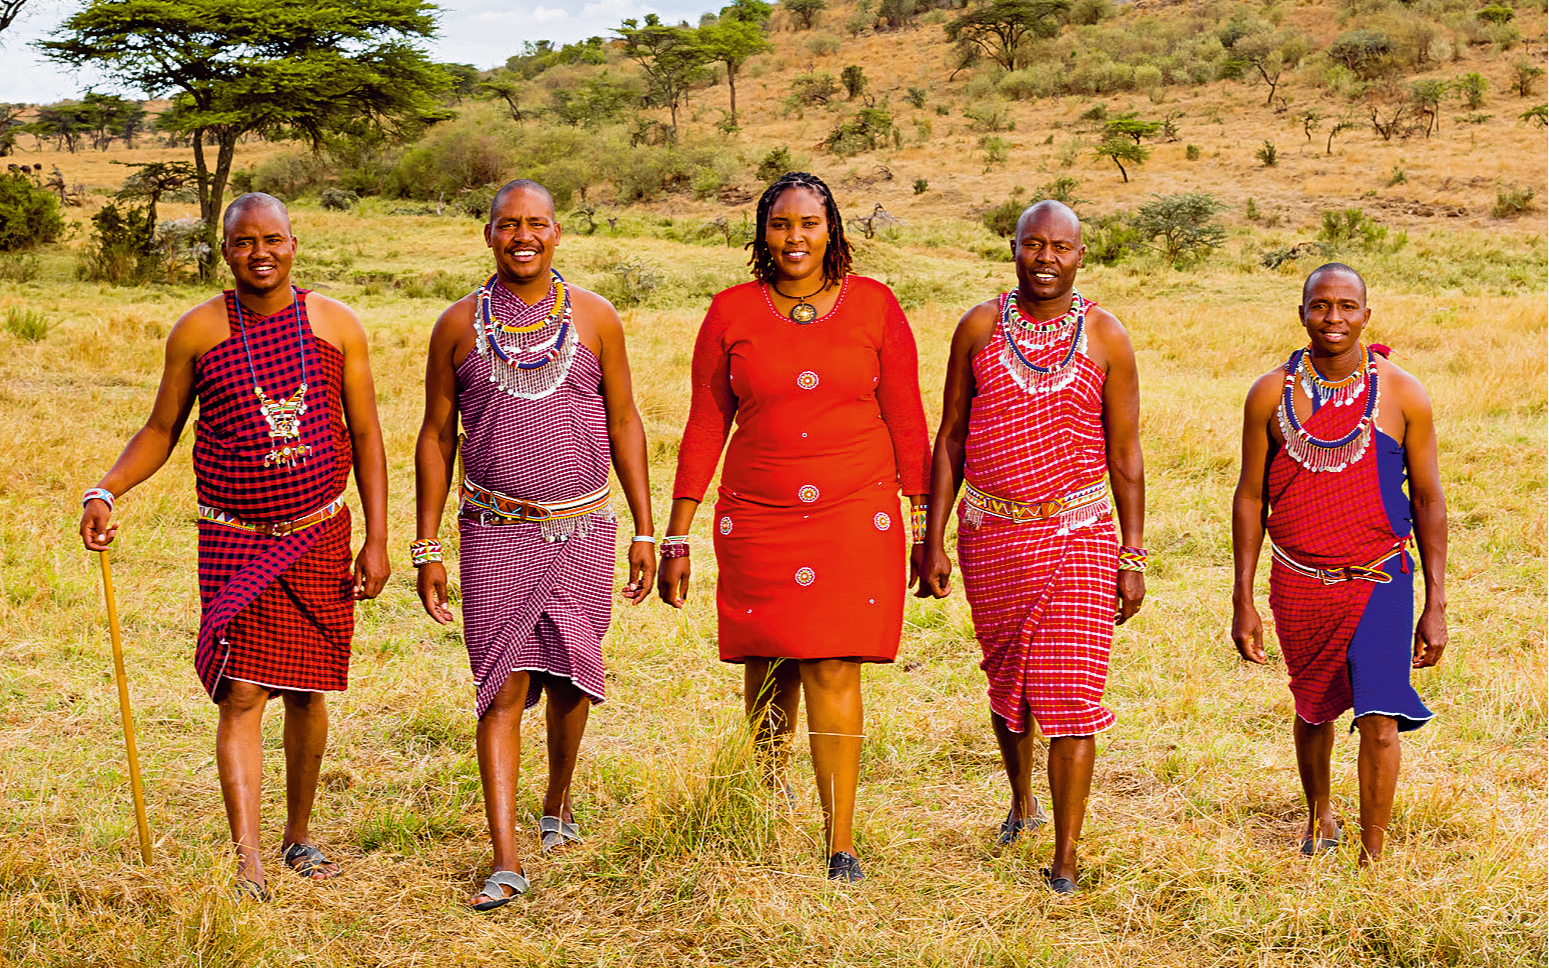 Virgin Limited Edition team members at Mhali Mzuri walking across a field